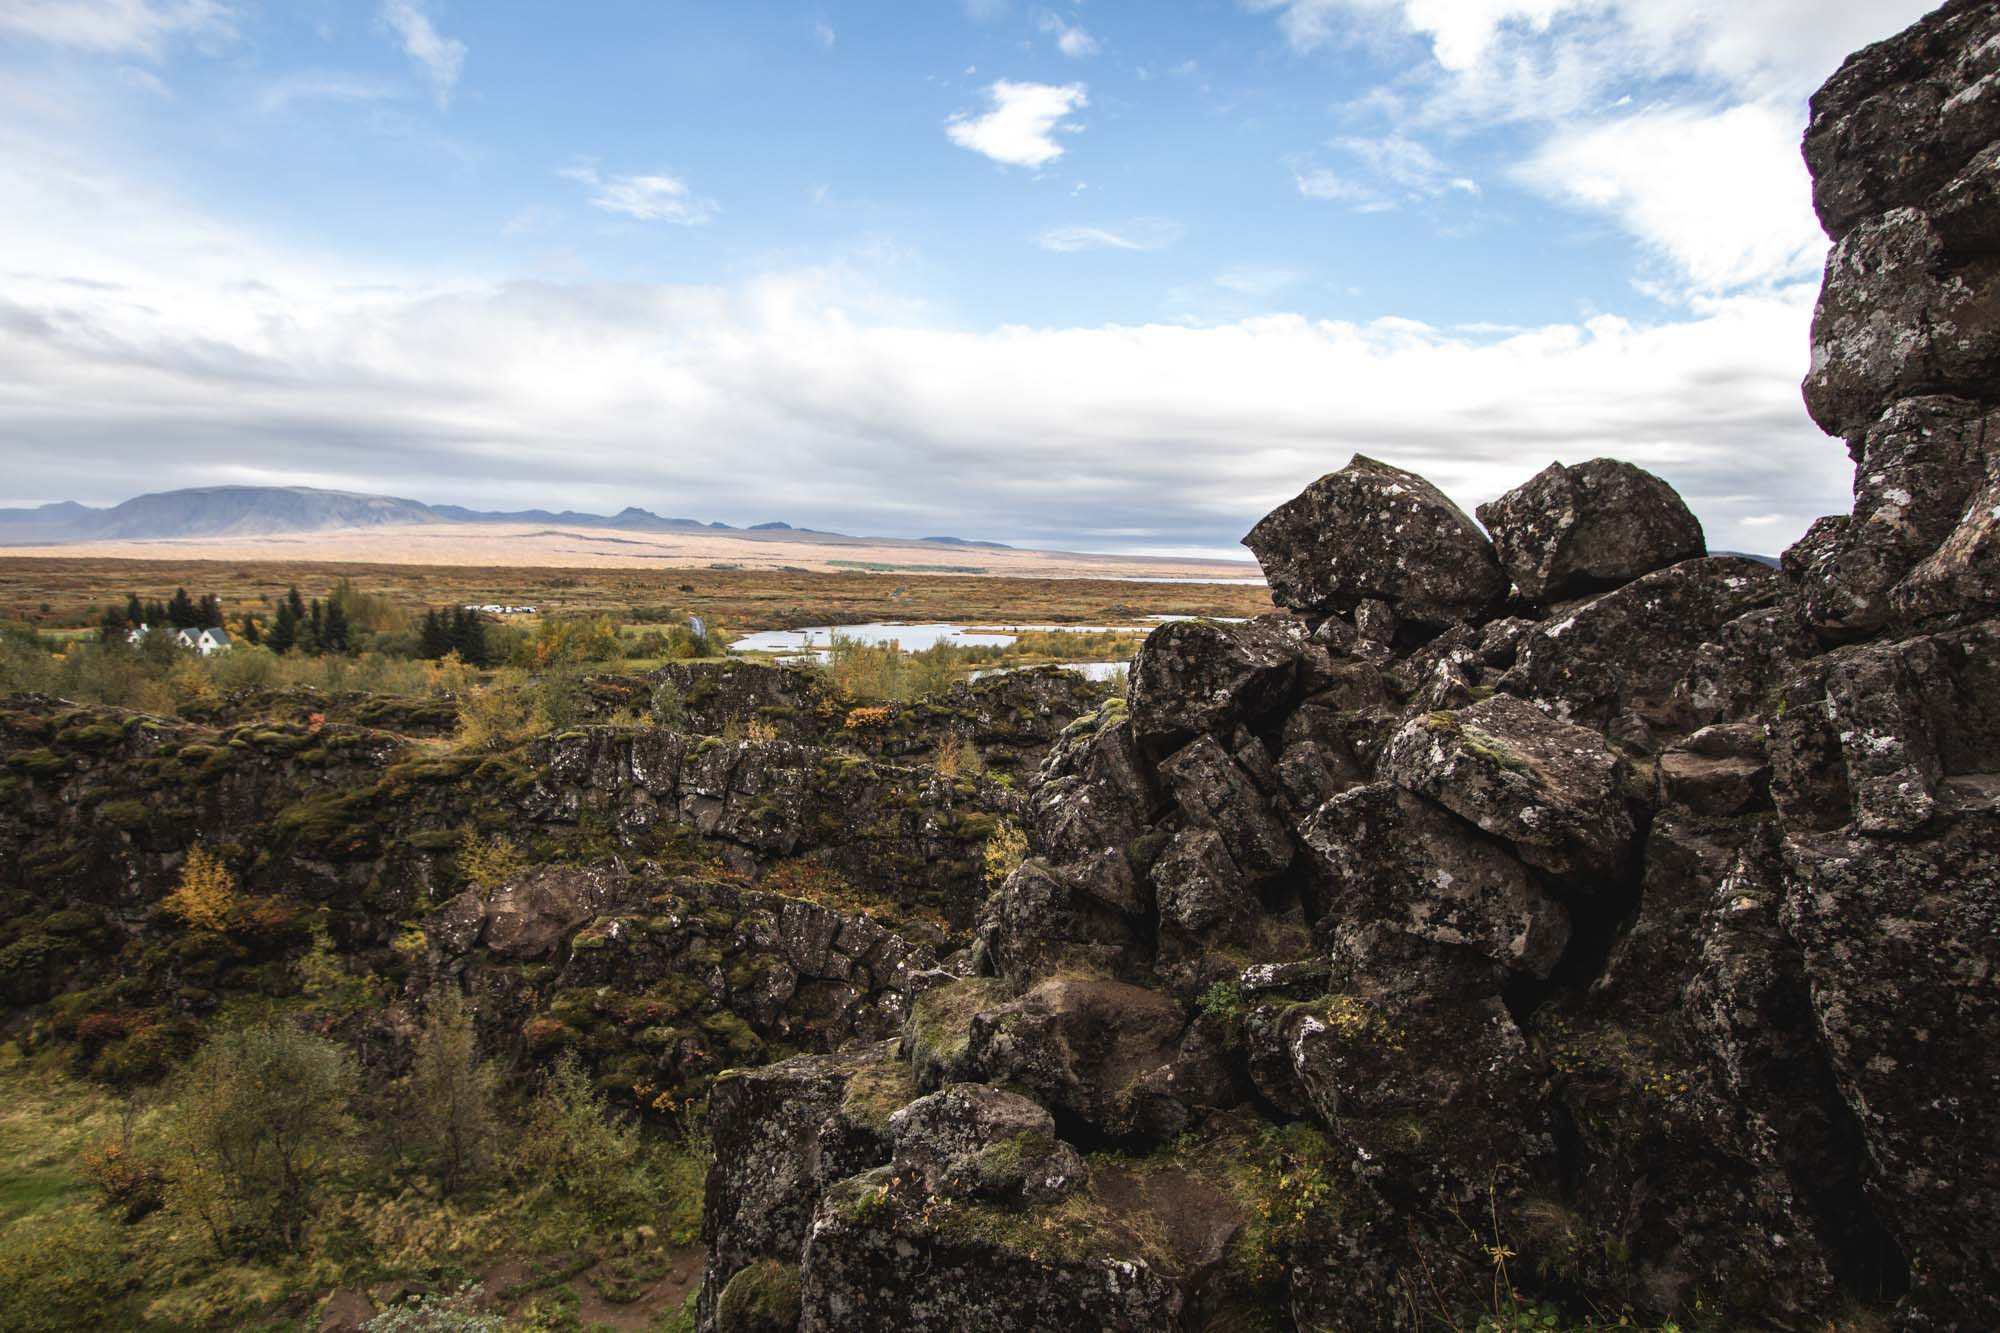 The Golden Circle: How to get the most out of it | All About Iceland